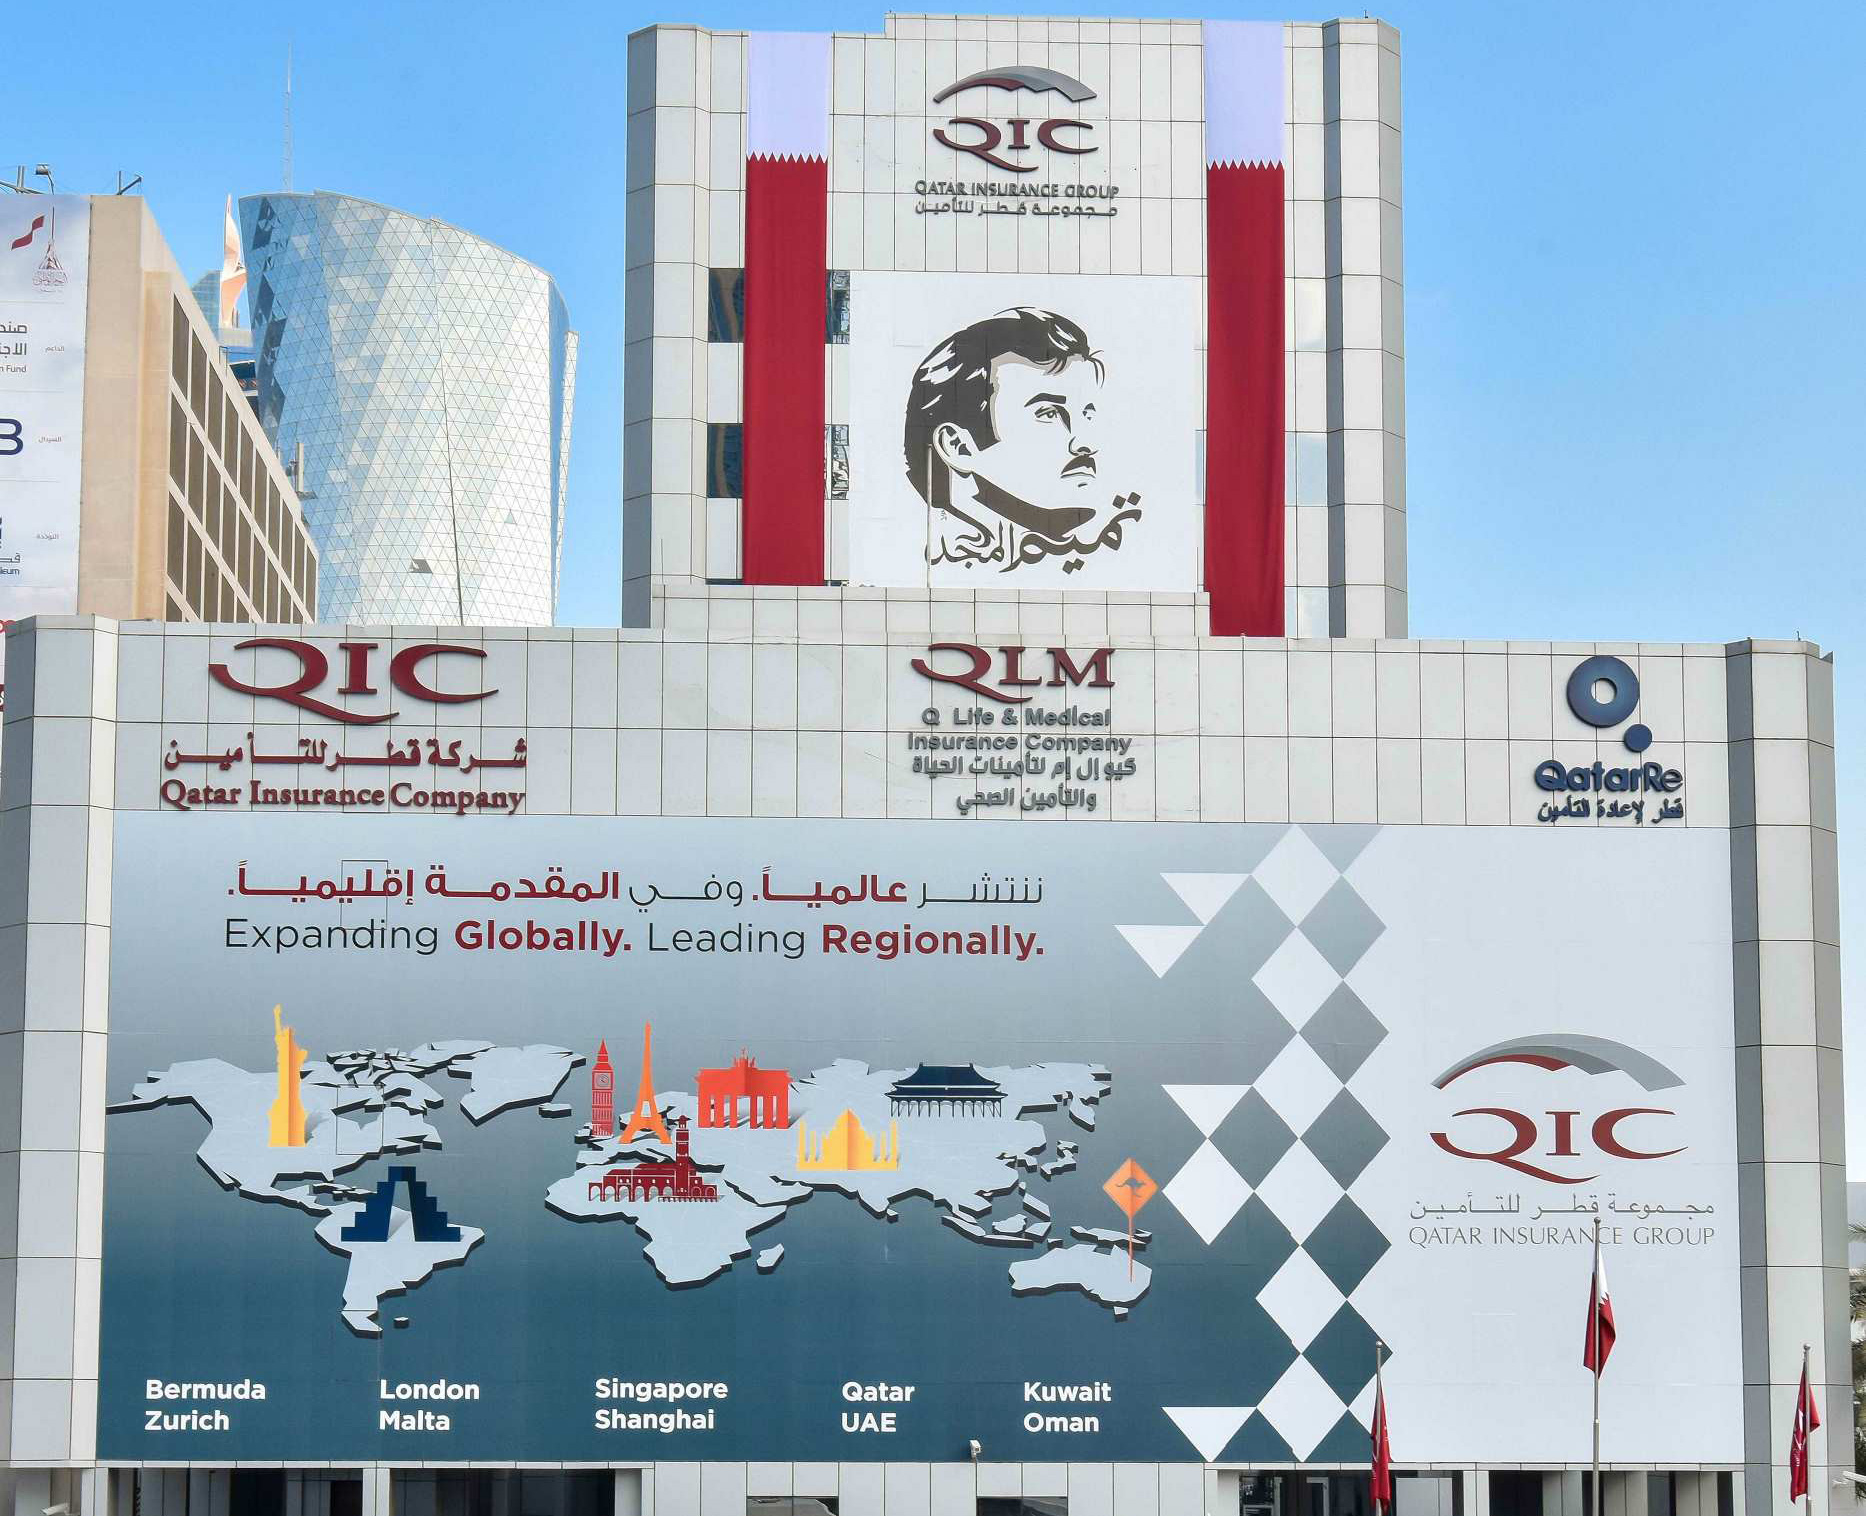 Qic Group Conducted In House Training Program For Staff Qatar Insurance Company